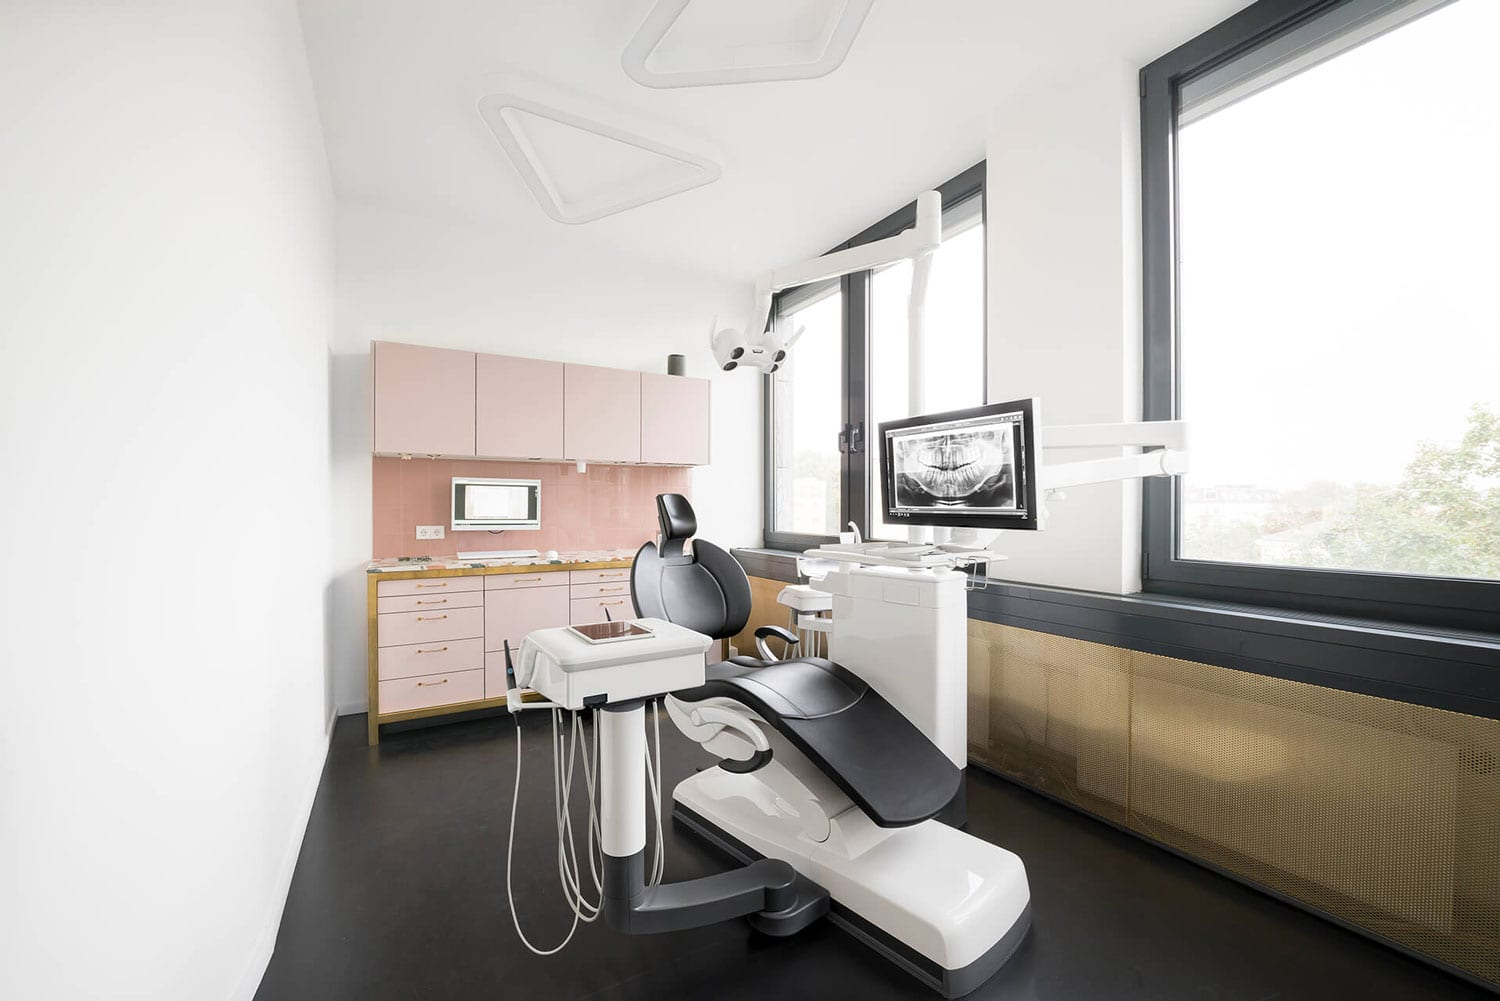 The Urban Dentist in Berlin by Studio Karhard | Yellowtrace